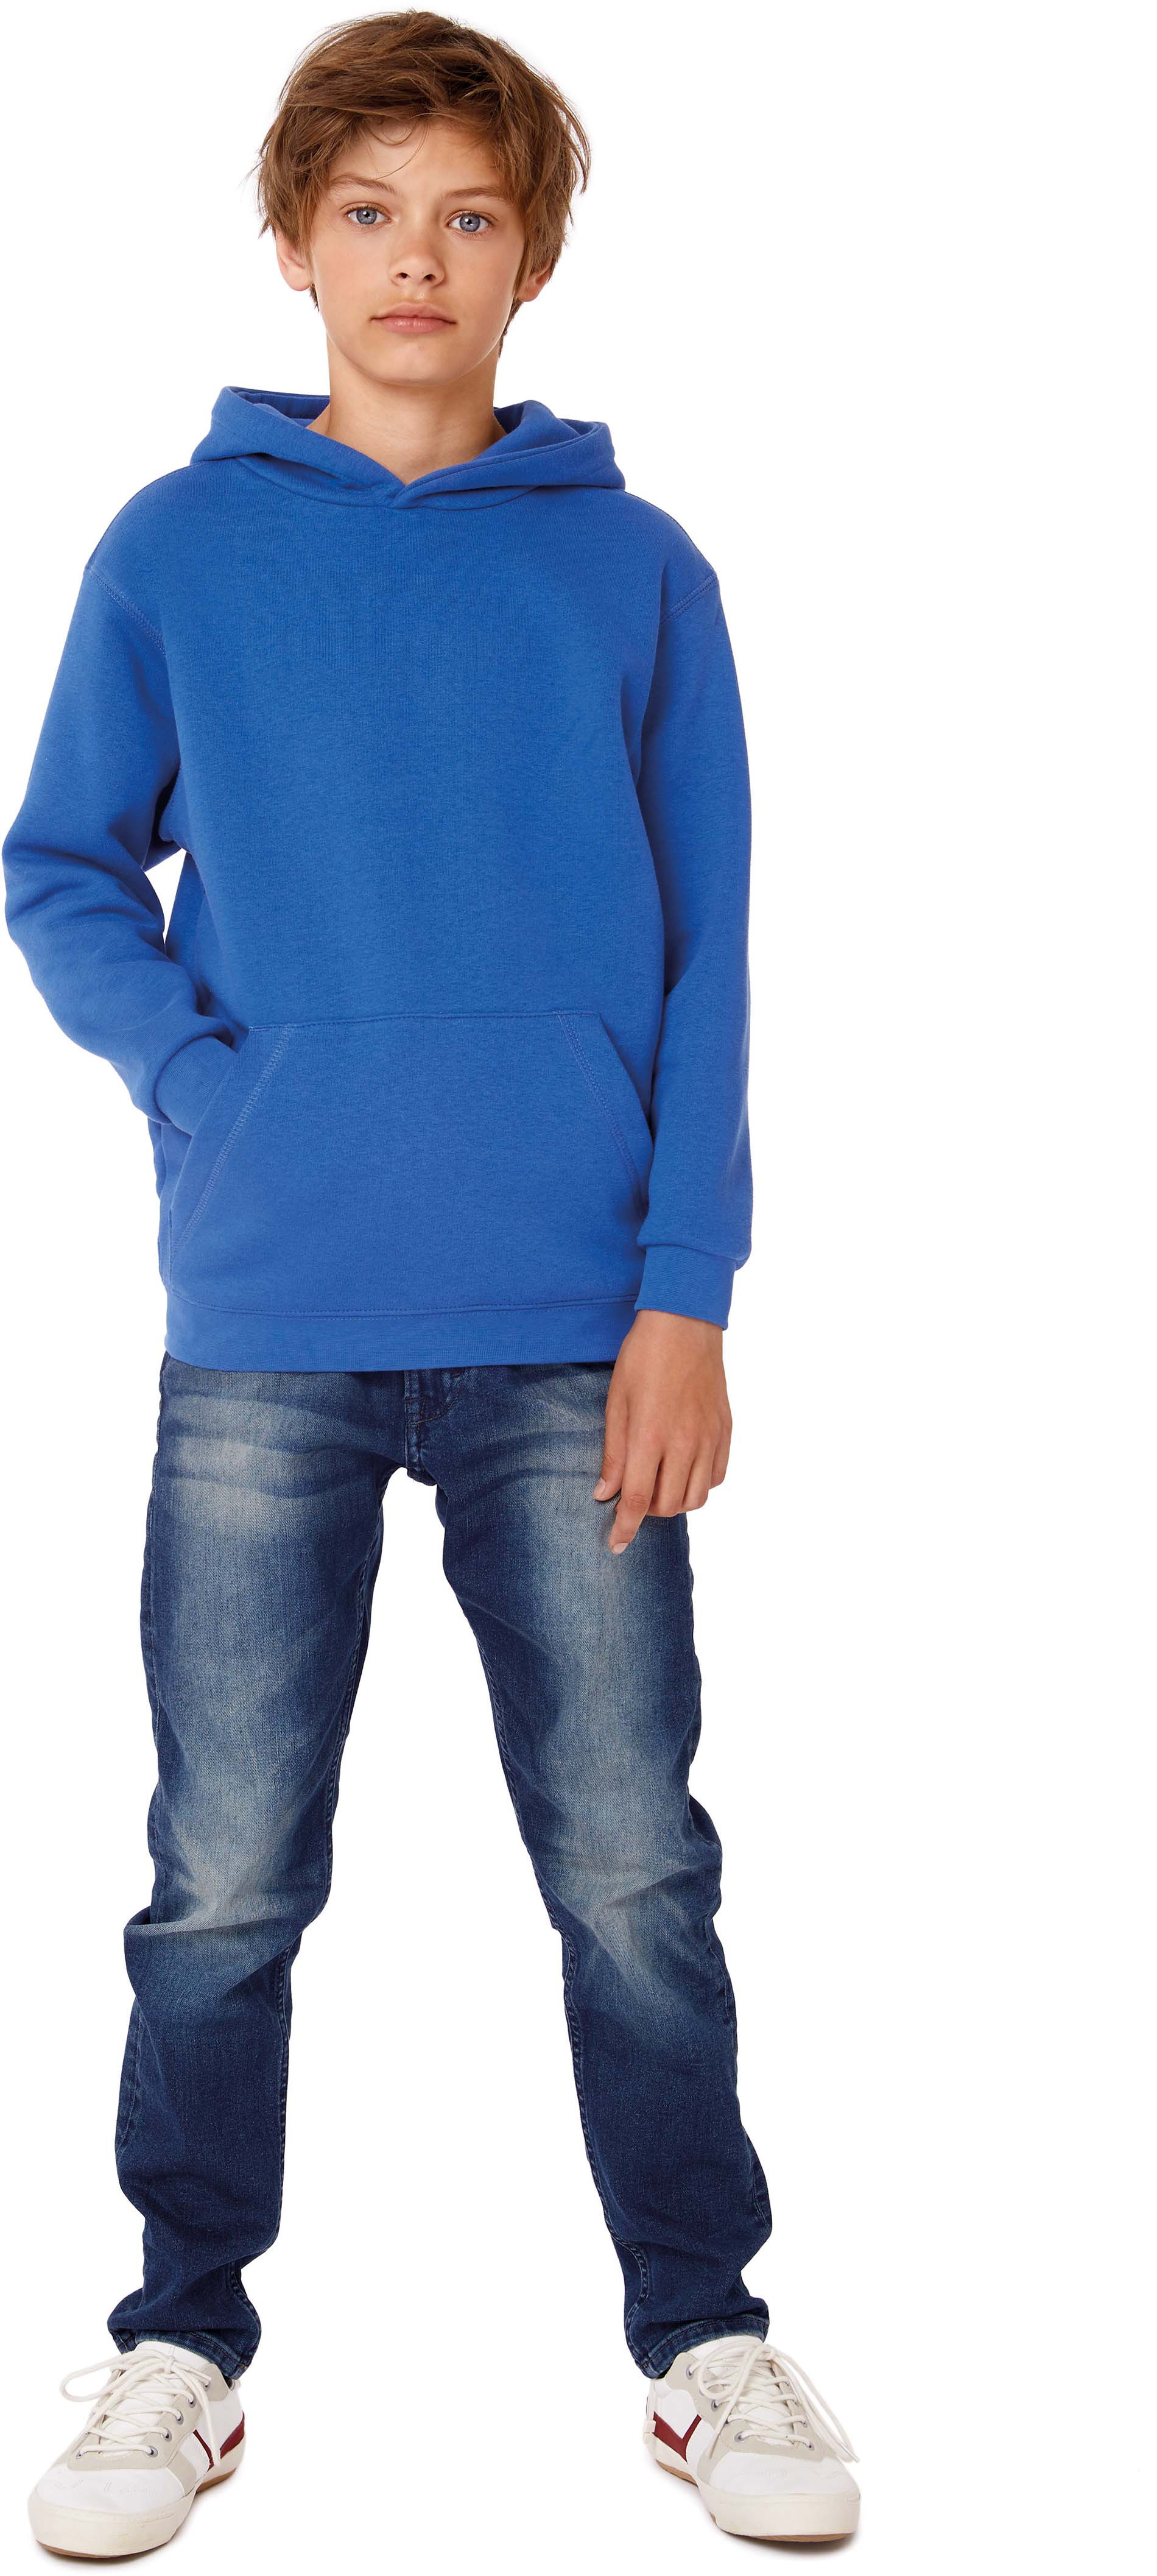 B&C SWEAT-SHIRT CAPUCHE ENFANT